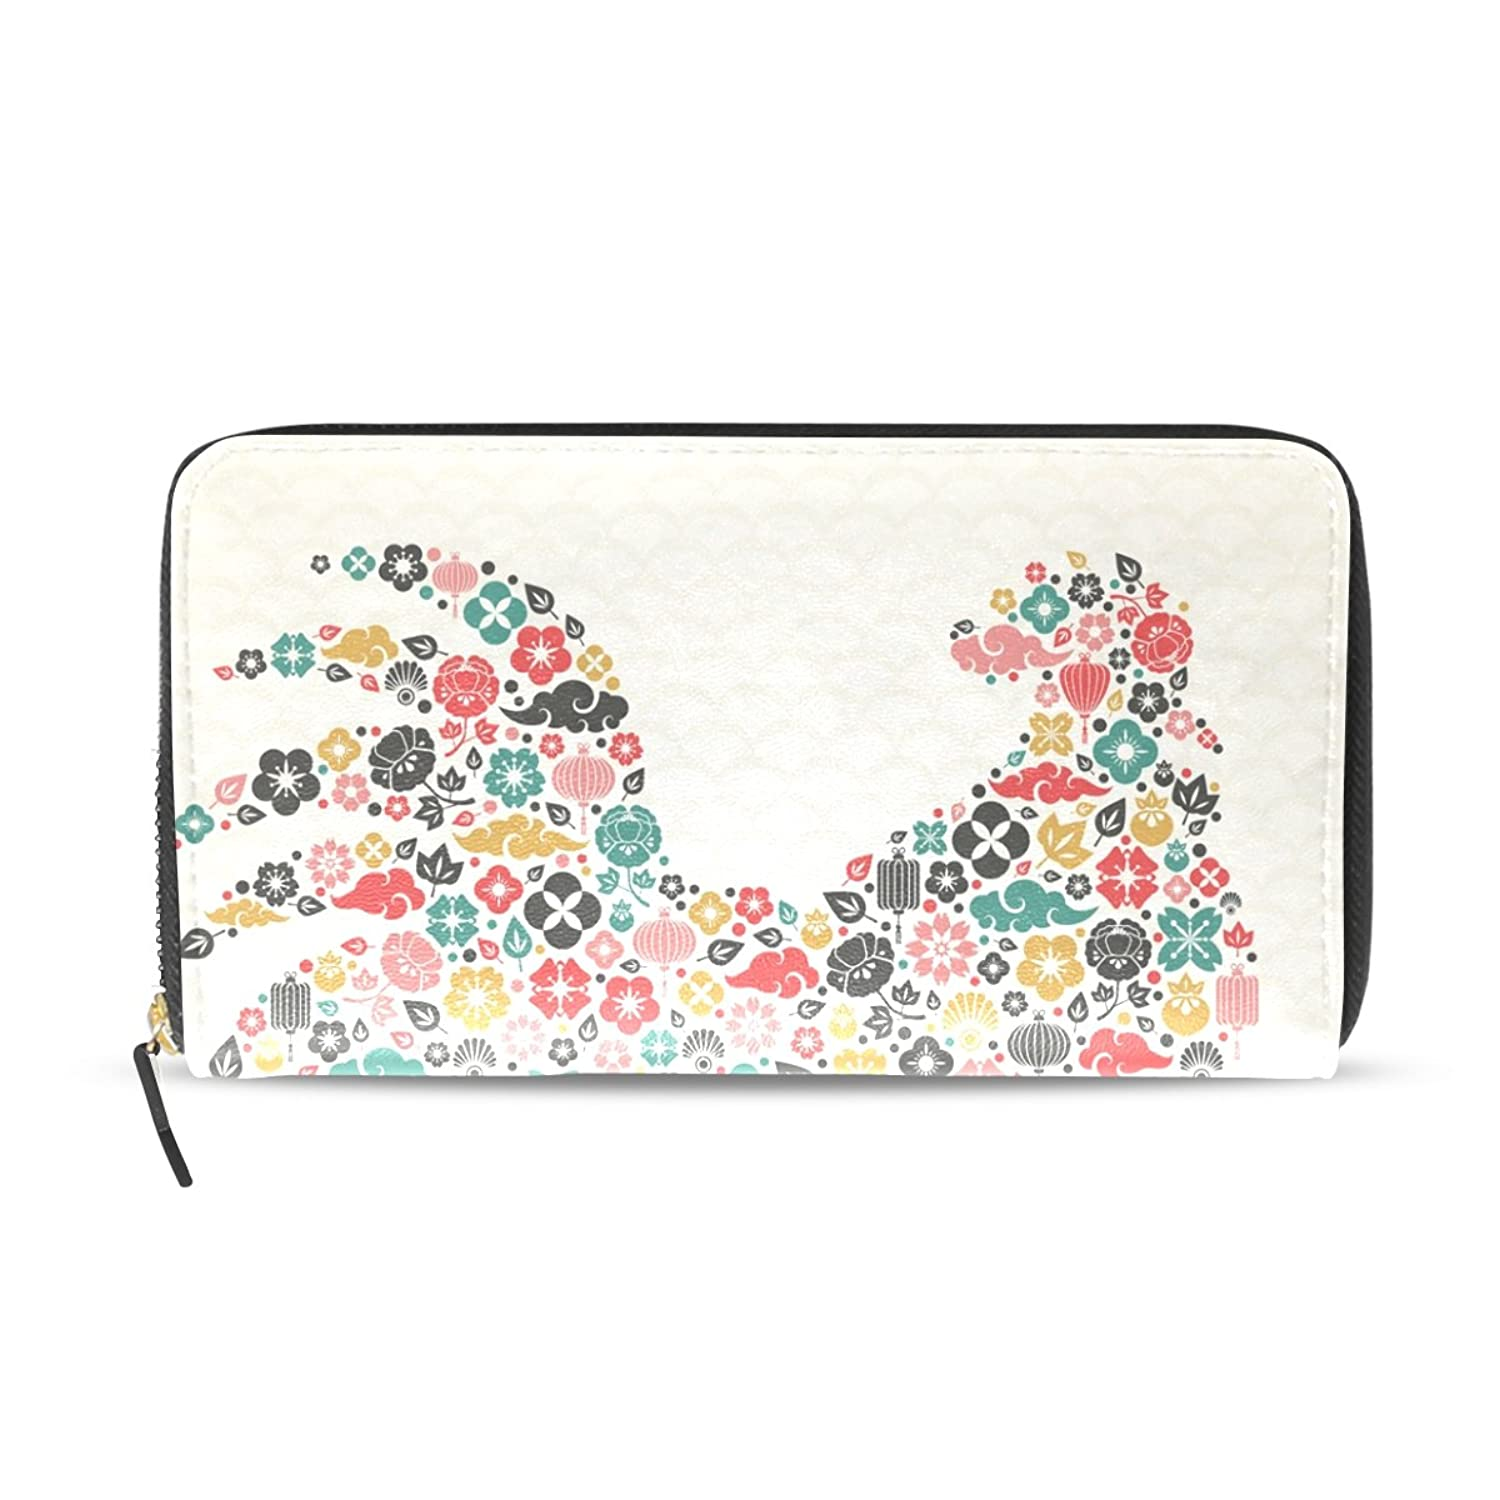 CCBHGY Women's Year Of The Rooster Clutch Leather Long Wallet Purse